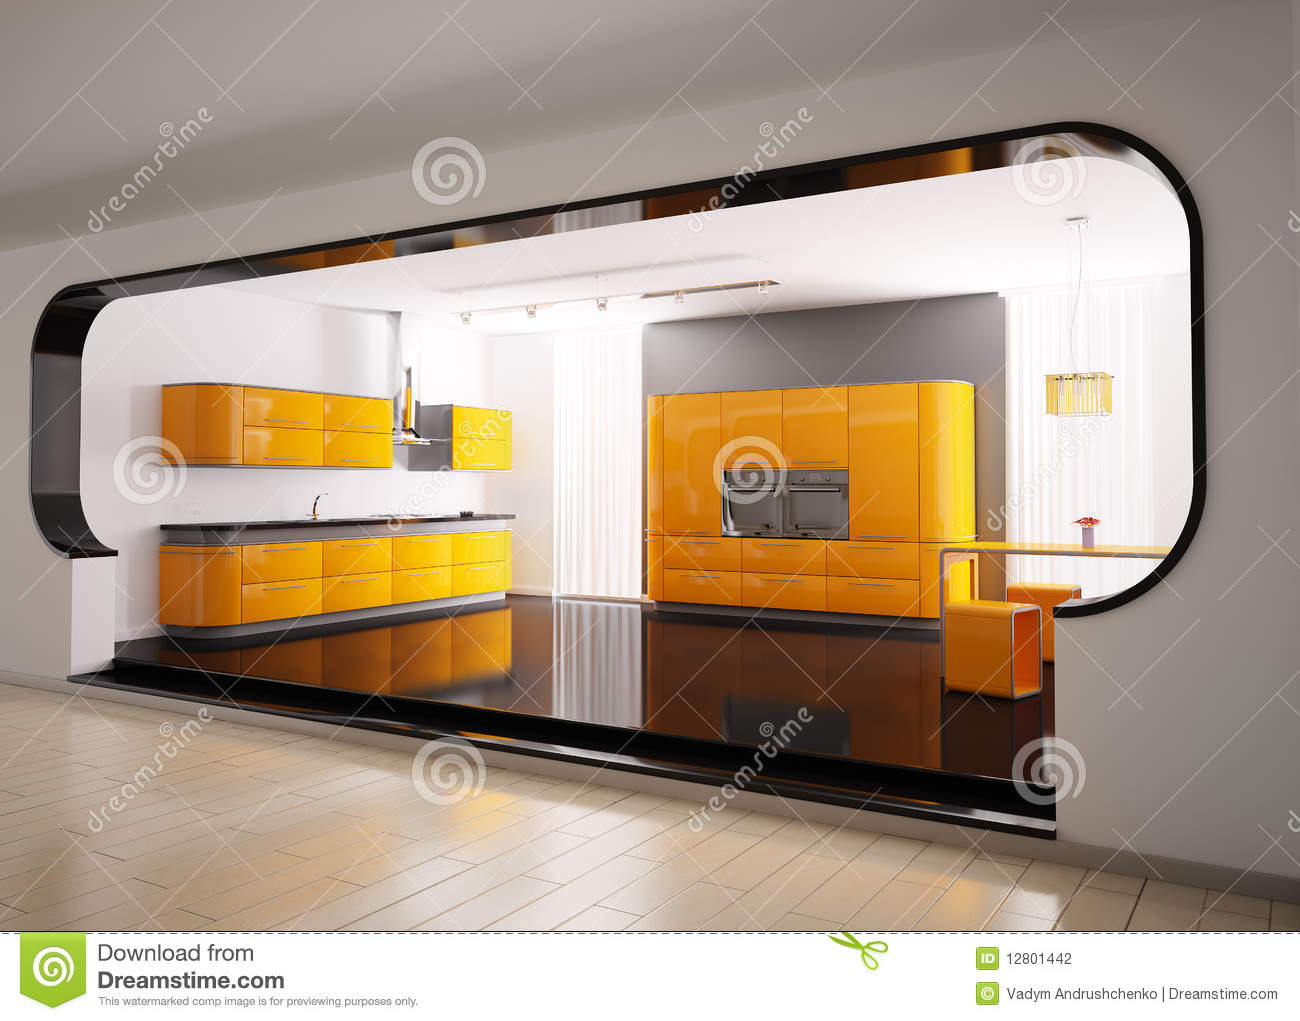 cuisine grise orange 3d illustration stock image du rideau 12801442. Black Bedroom Furniture Sets. Home Design Ideas